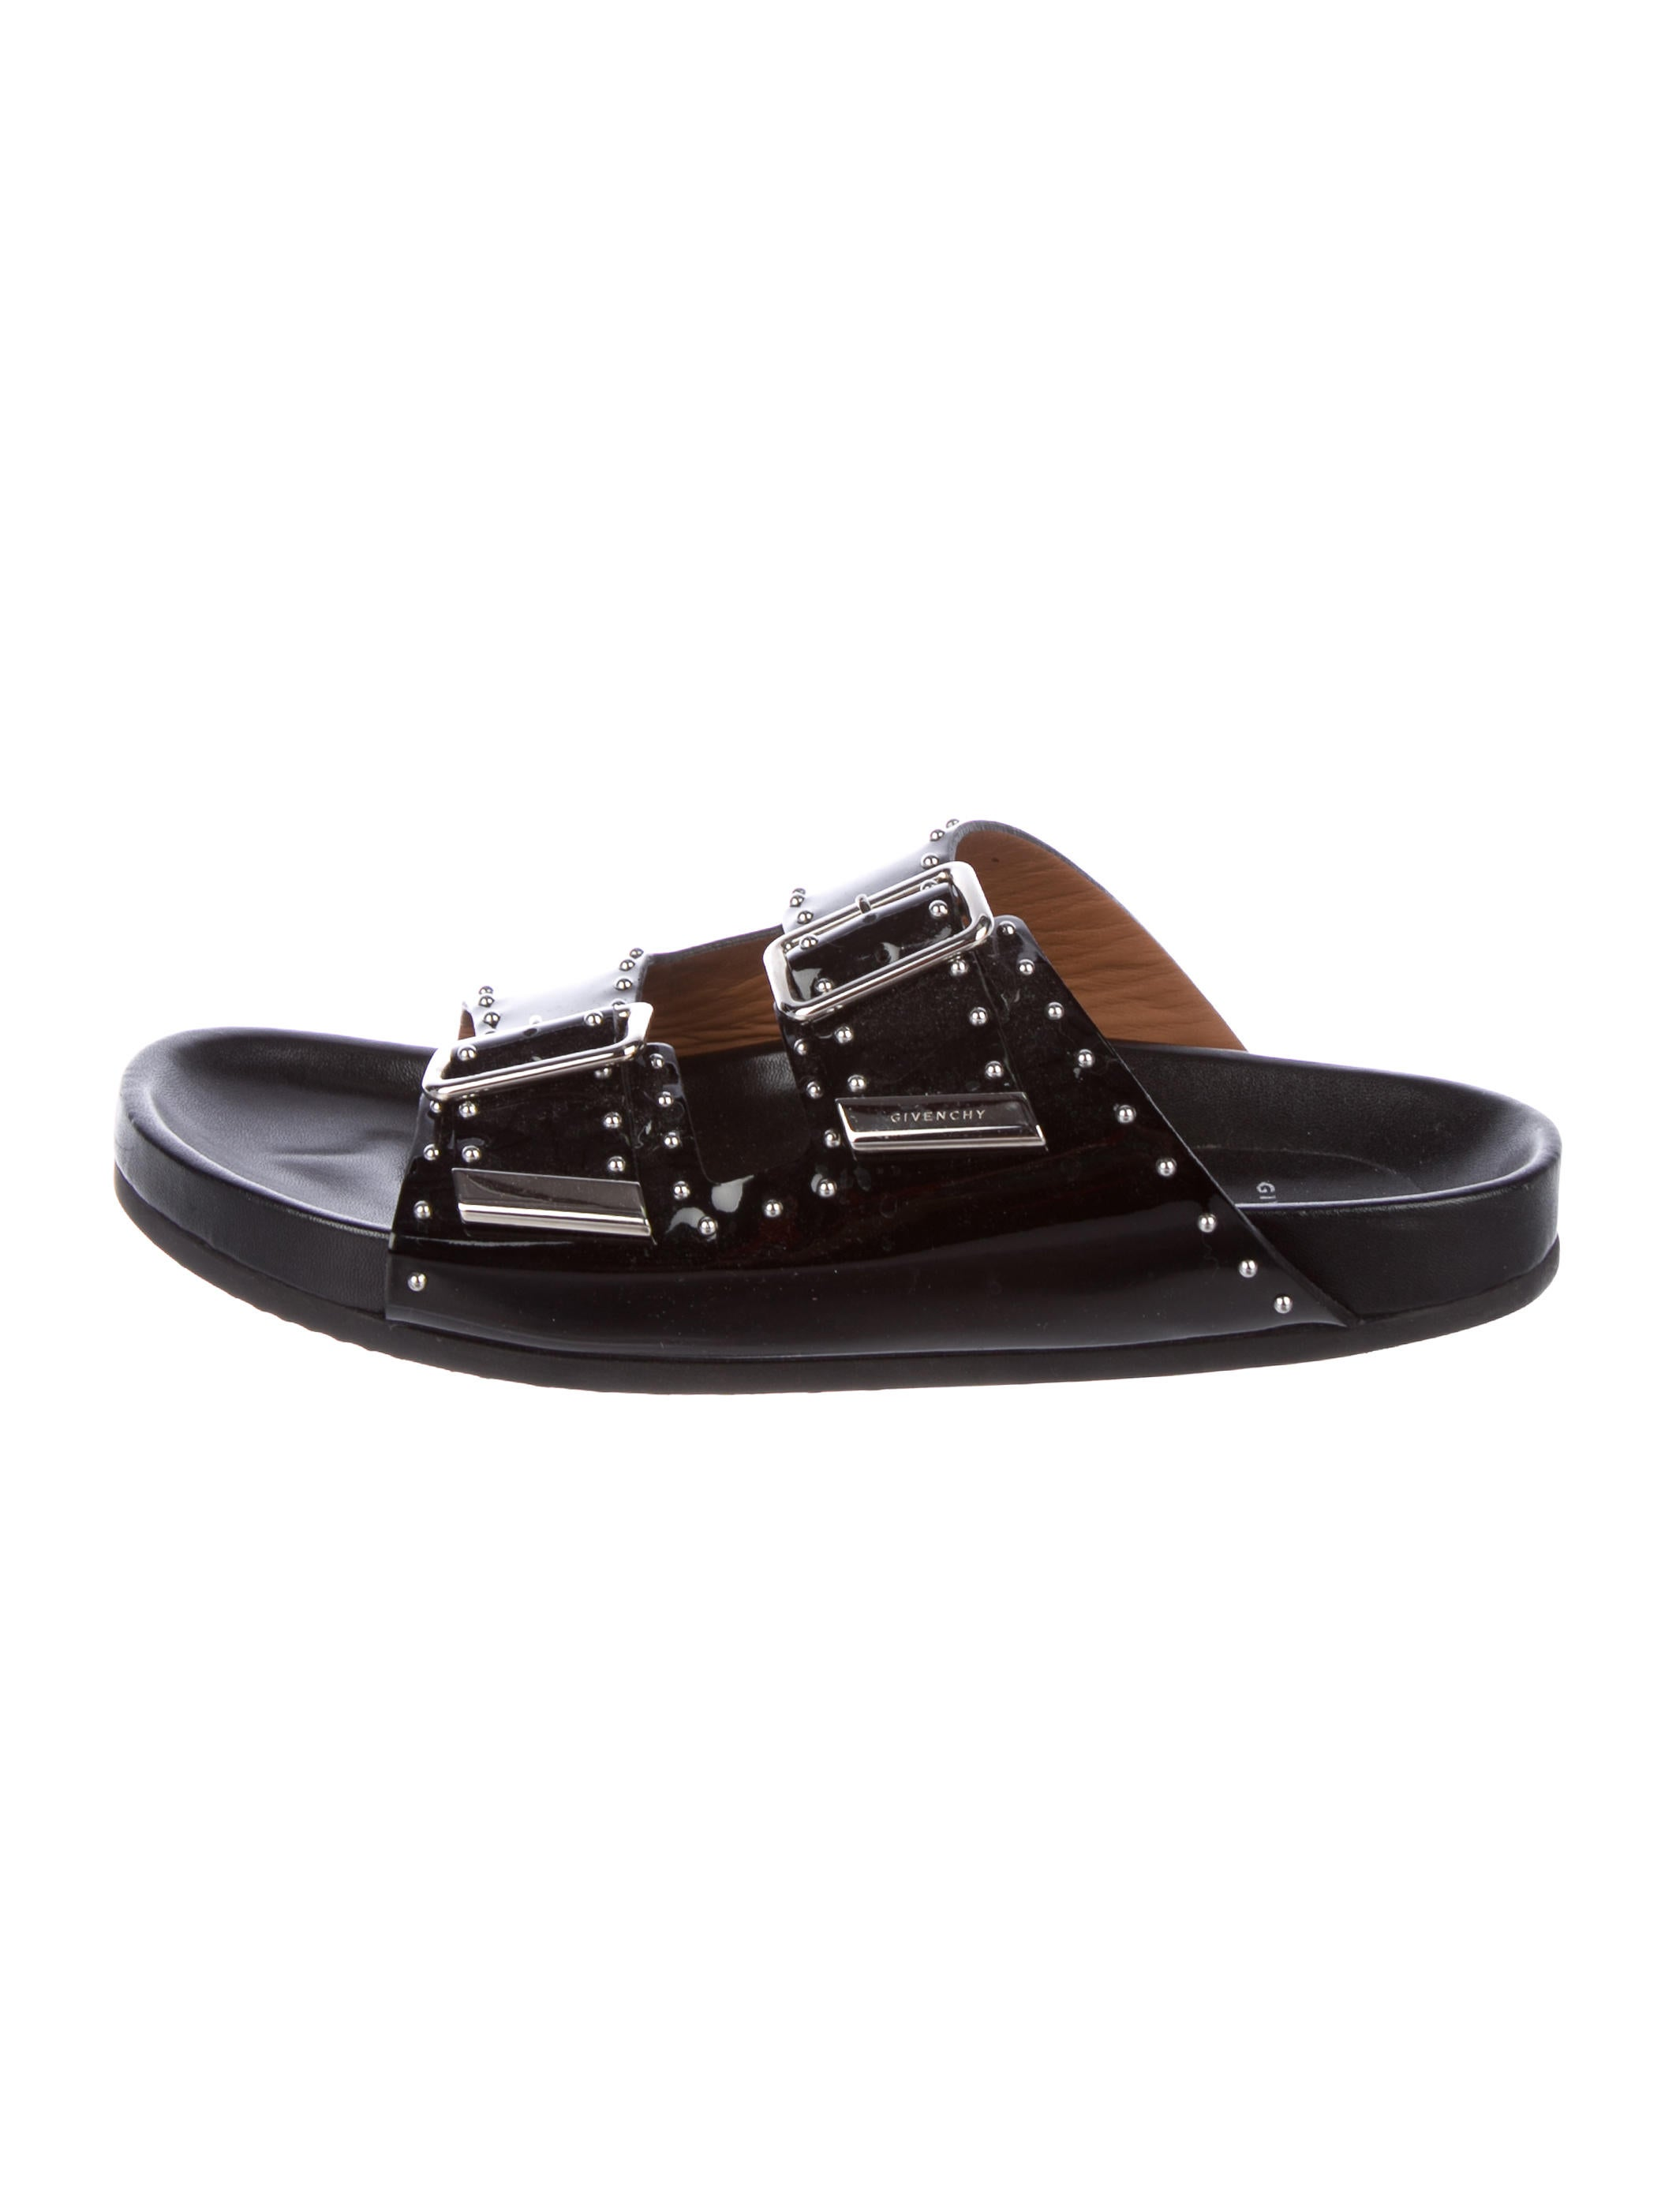 2ec286c80b6d Givenchy Studded Patent Leather Sandals - Shoes - GIV59008